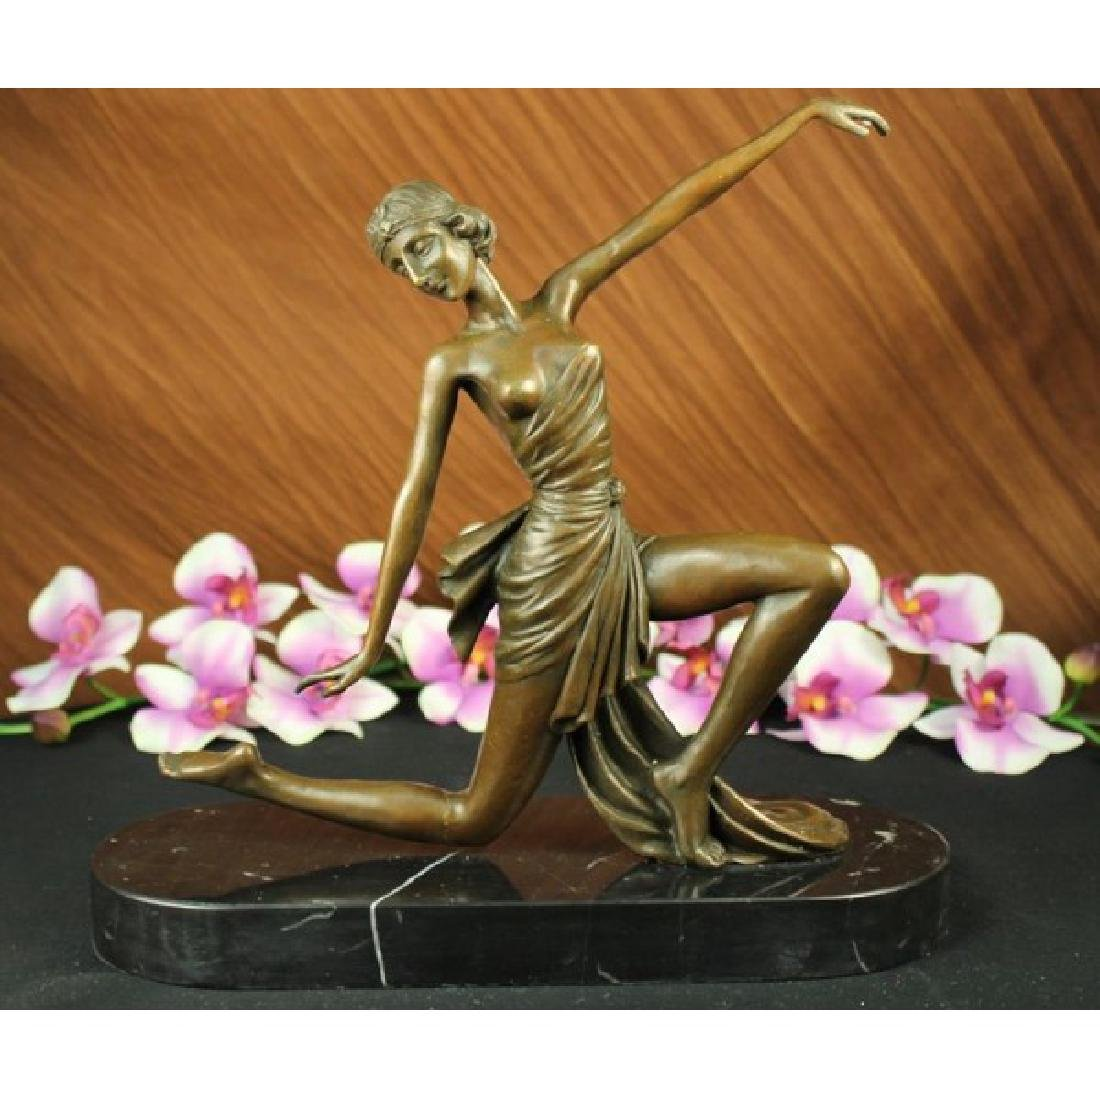 Orig. Jean Patou Gilt Flirty Dancer Bronze Figurine